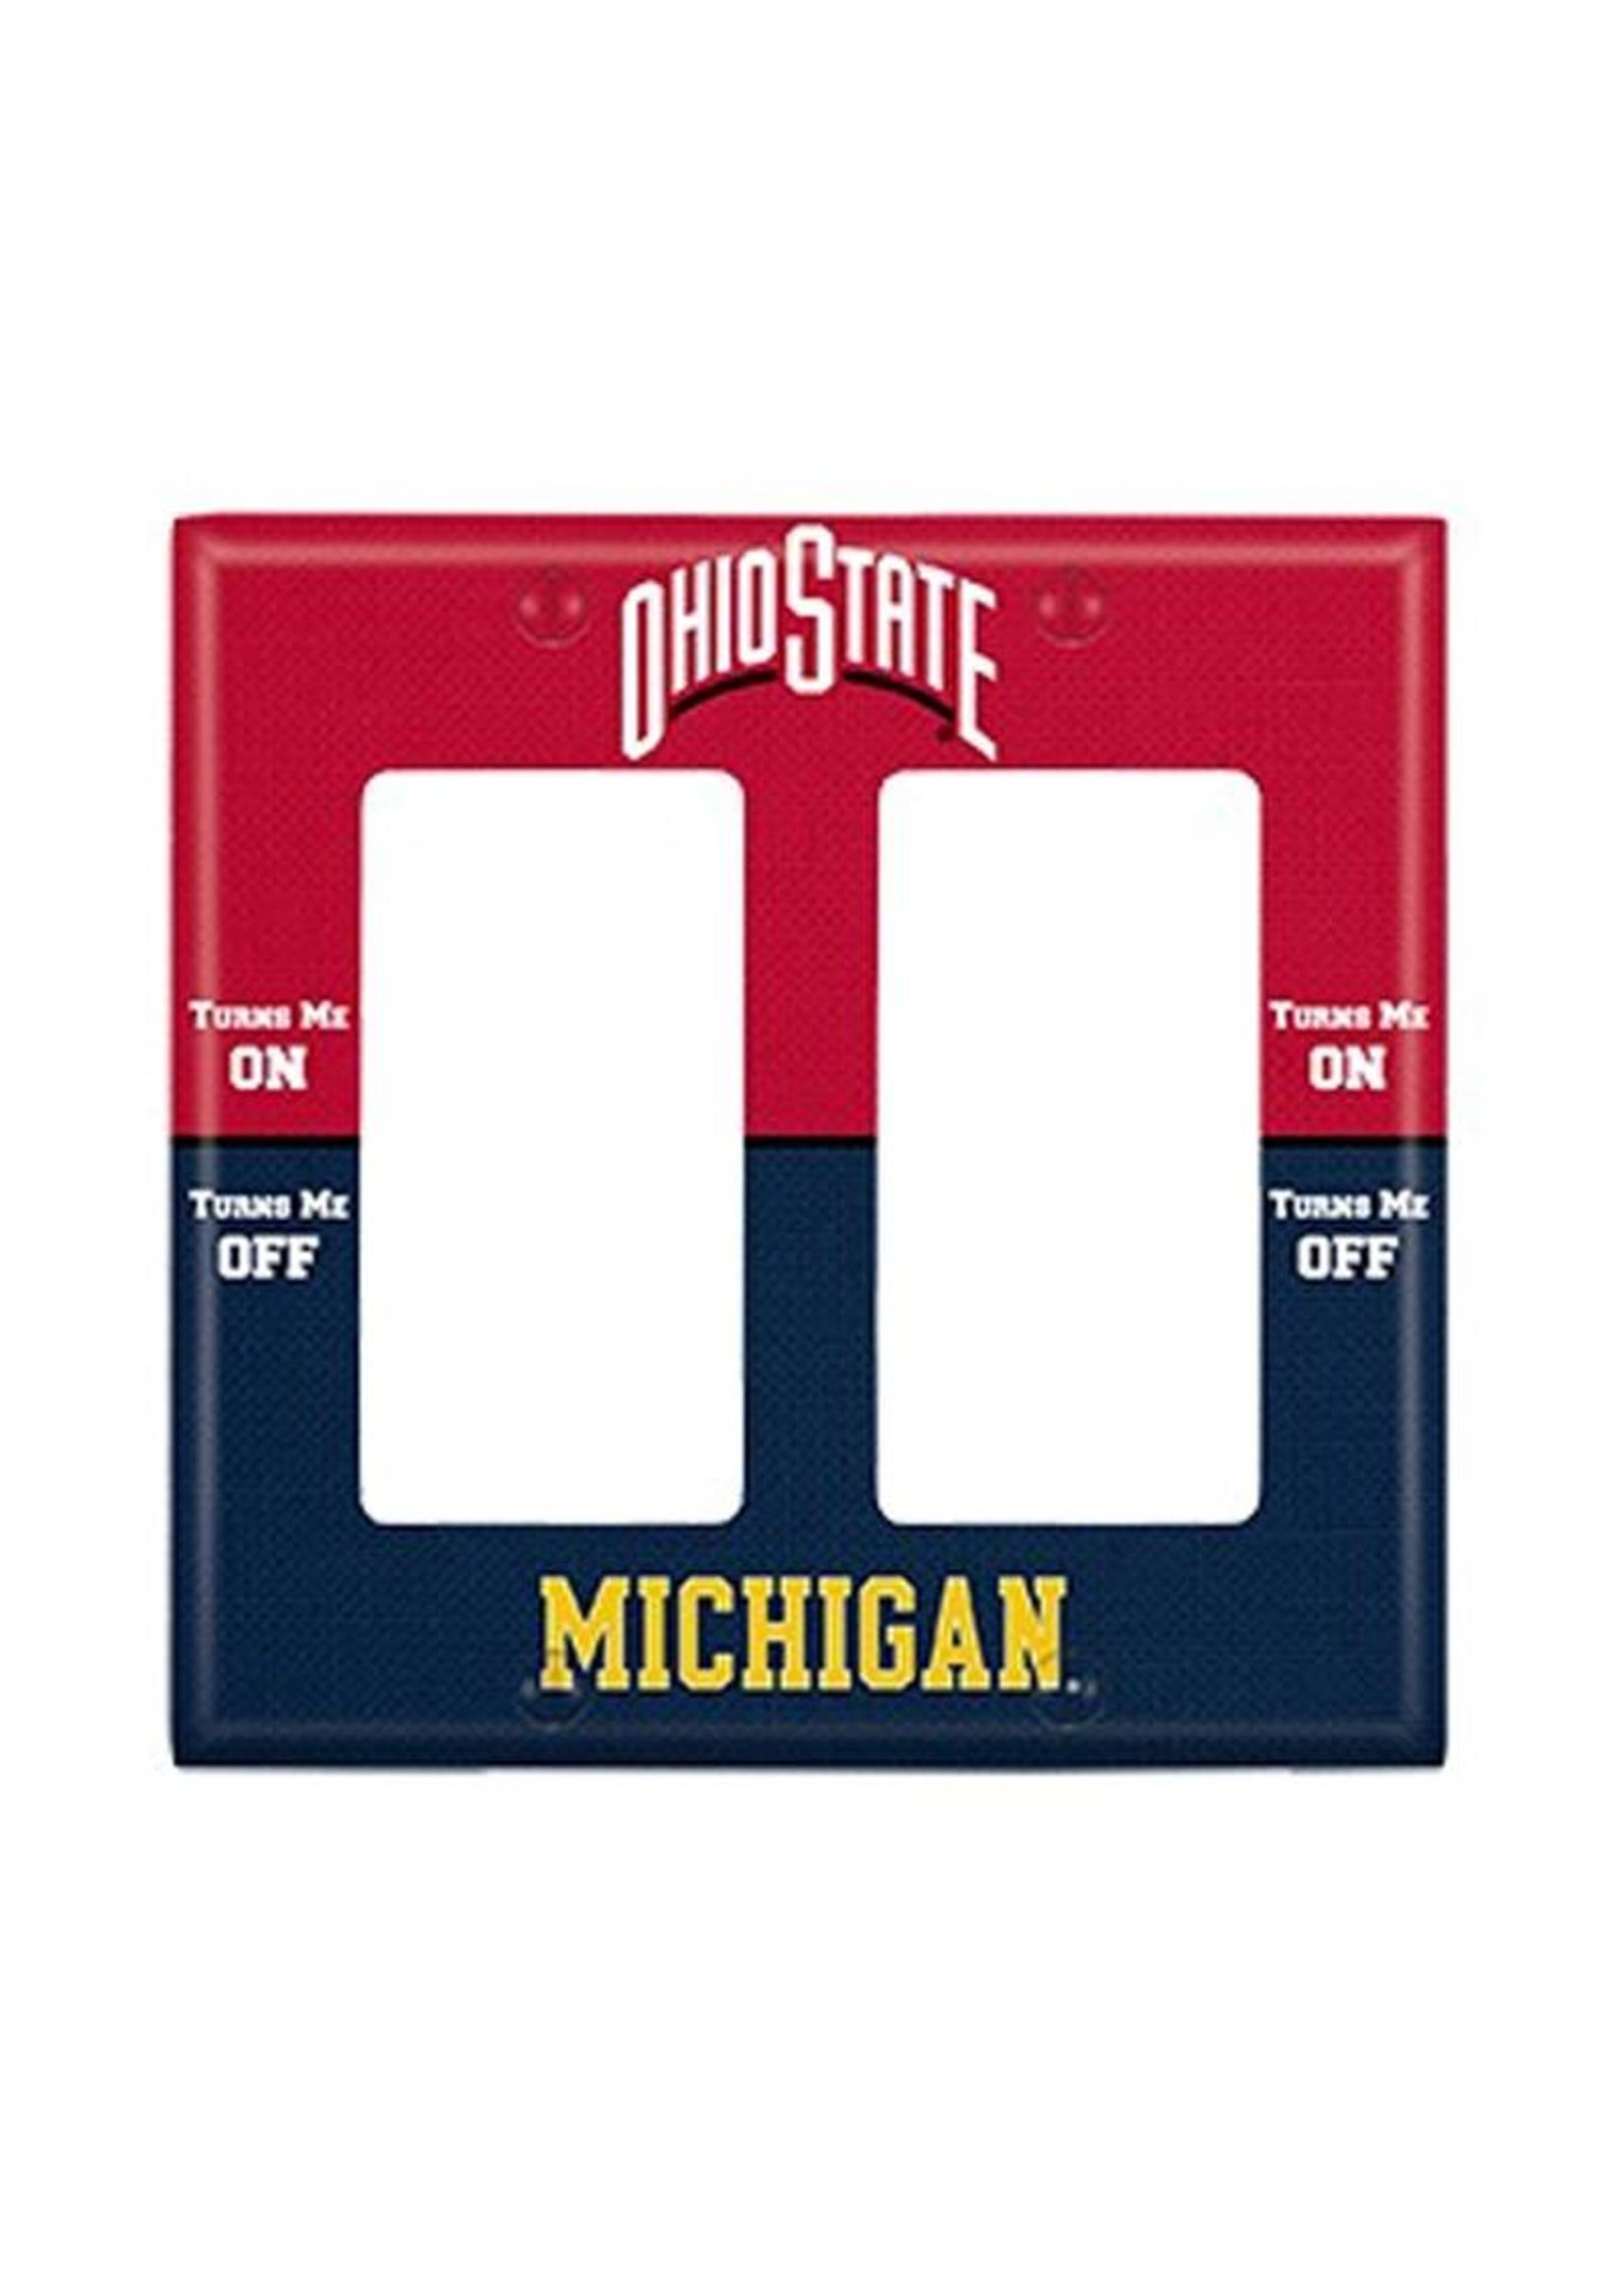 Ohio State vs Michigan Double Rocker Light Switch Cover